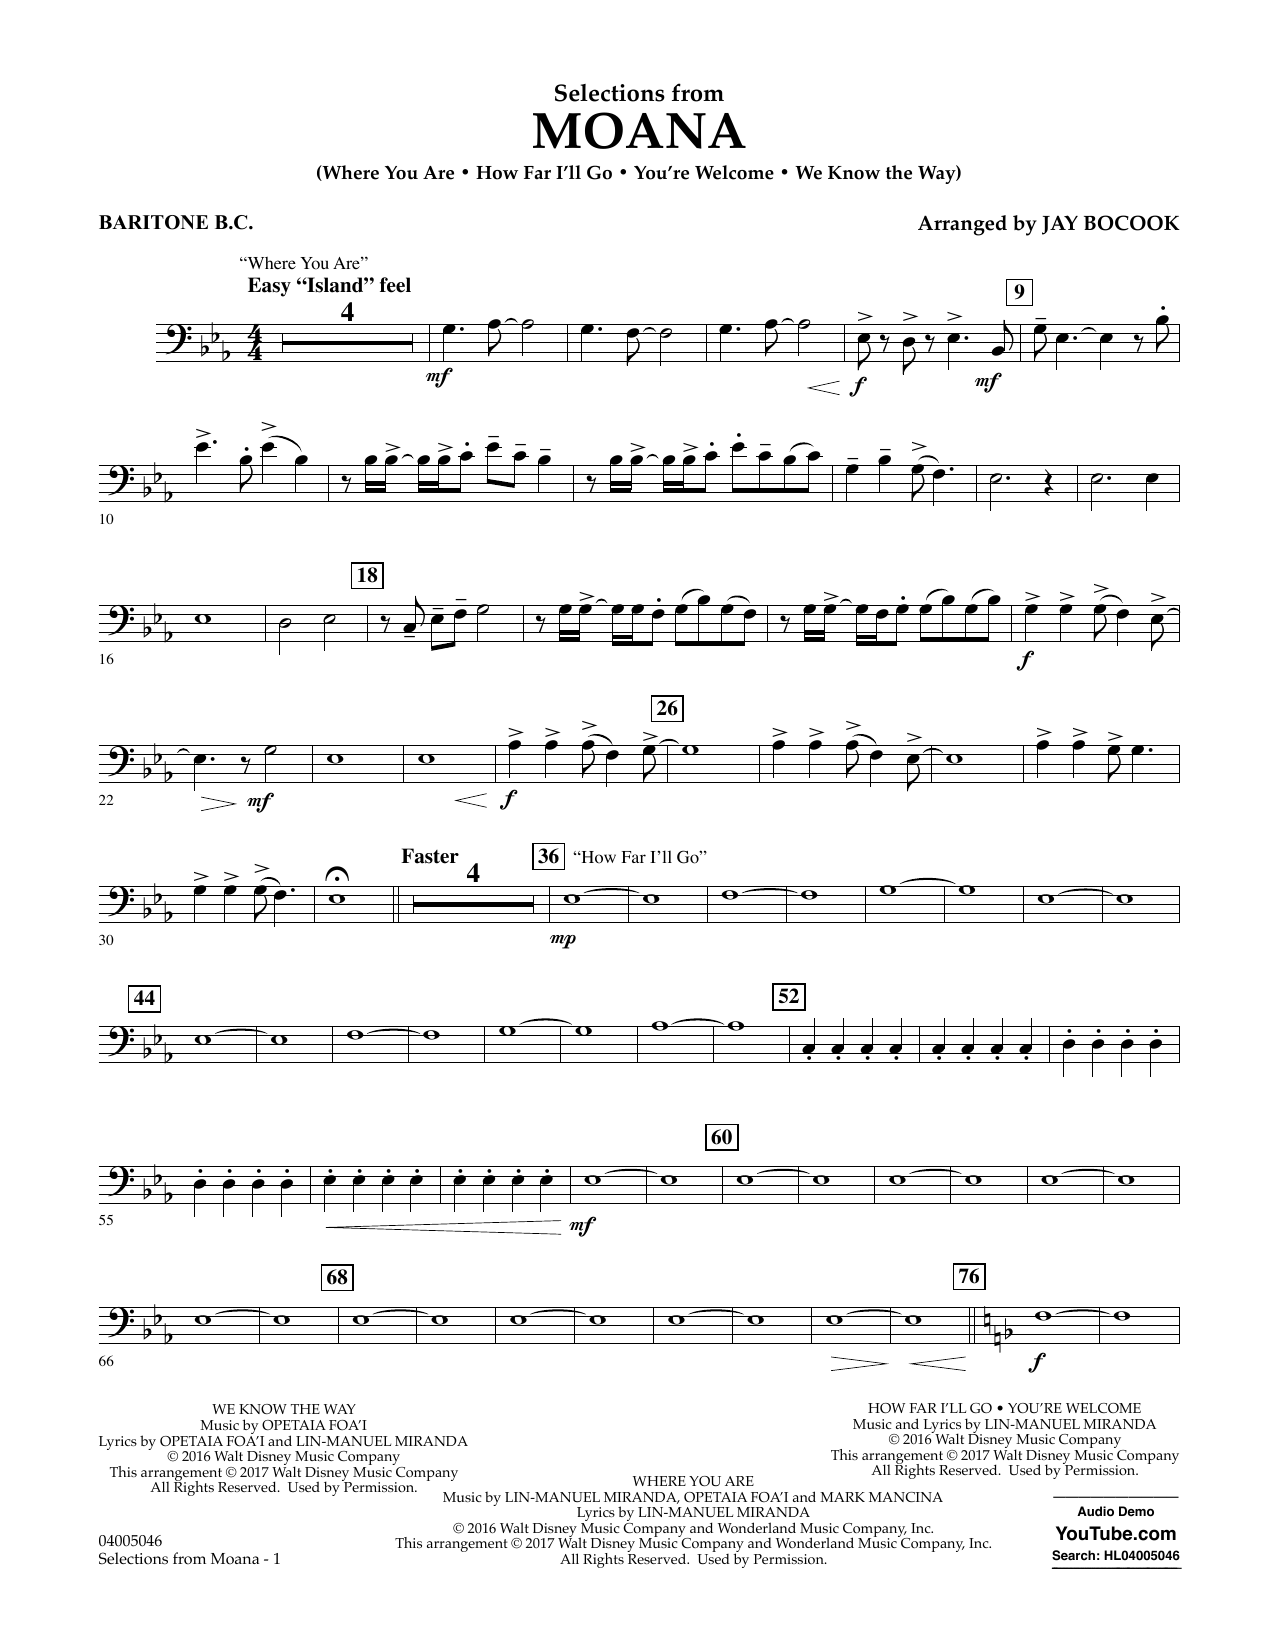 Selections from Moana - Baritone B.C. Sheet Music